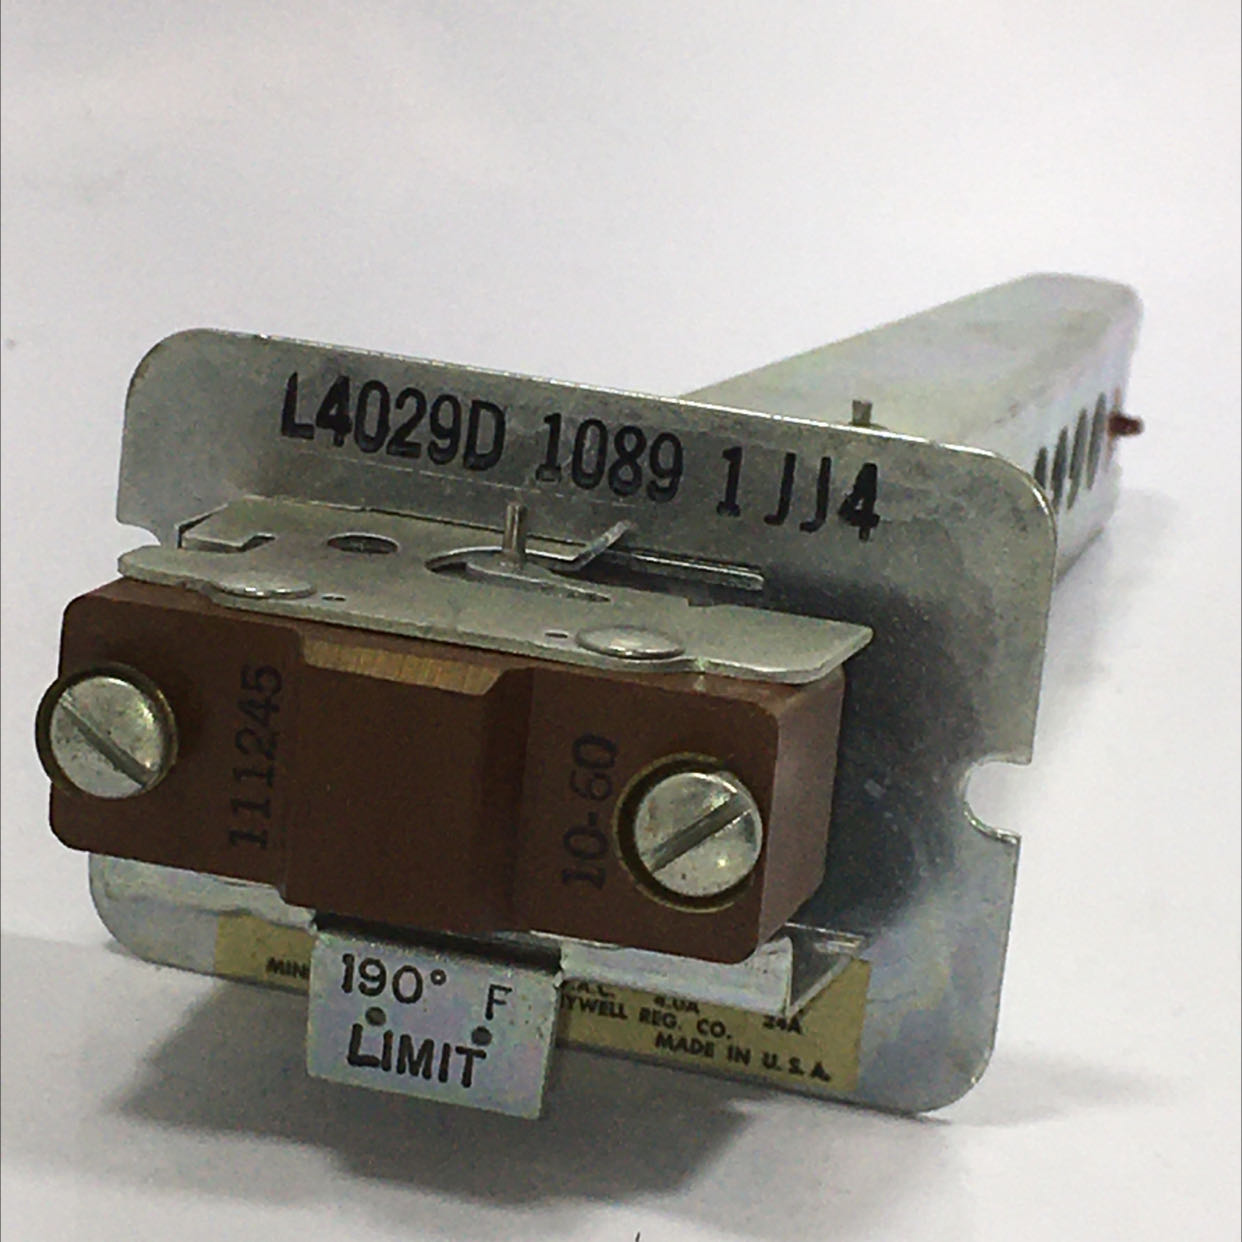 Honeywell L4029D-1089-1 Limit Control 2-Wire 7